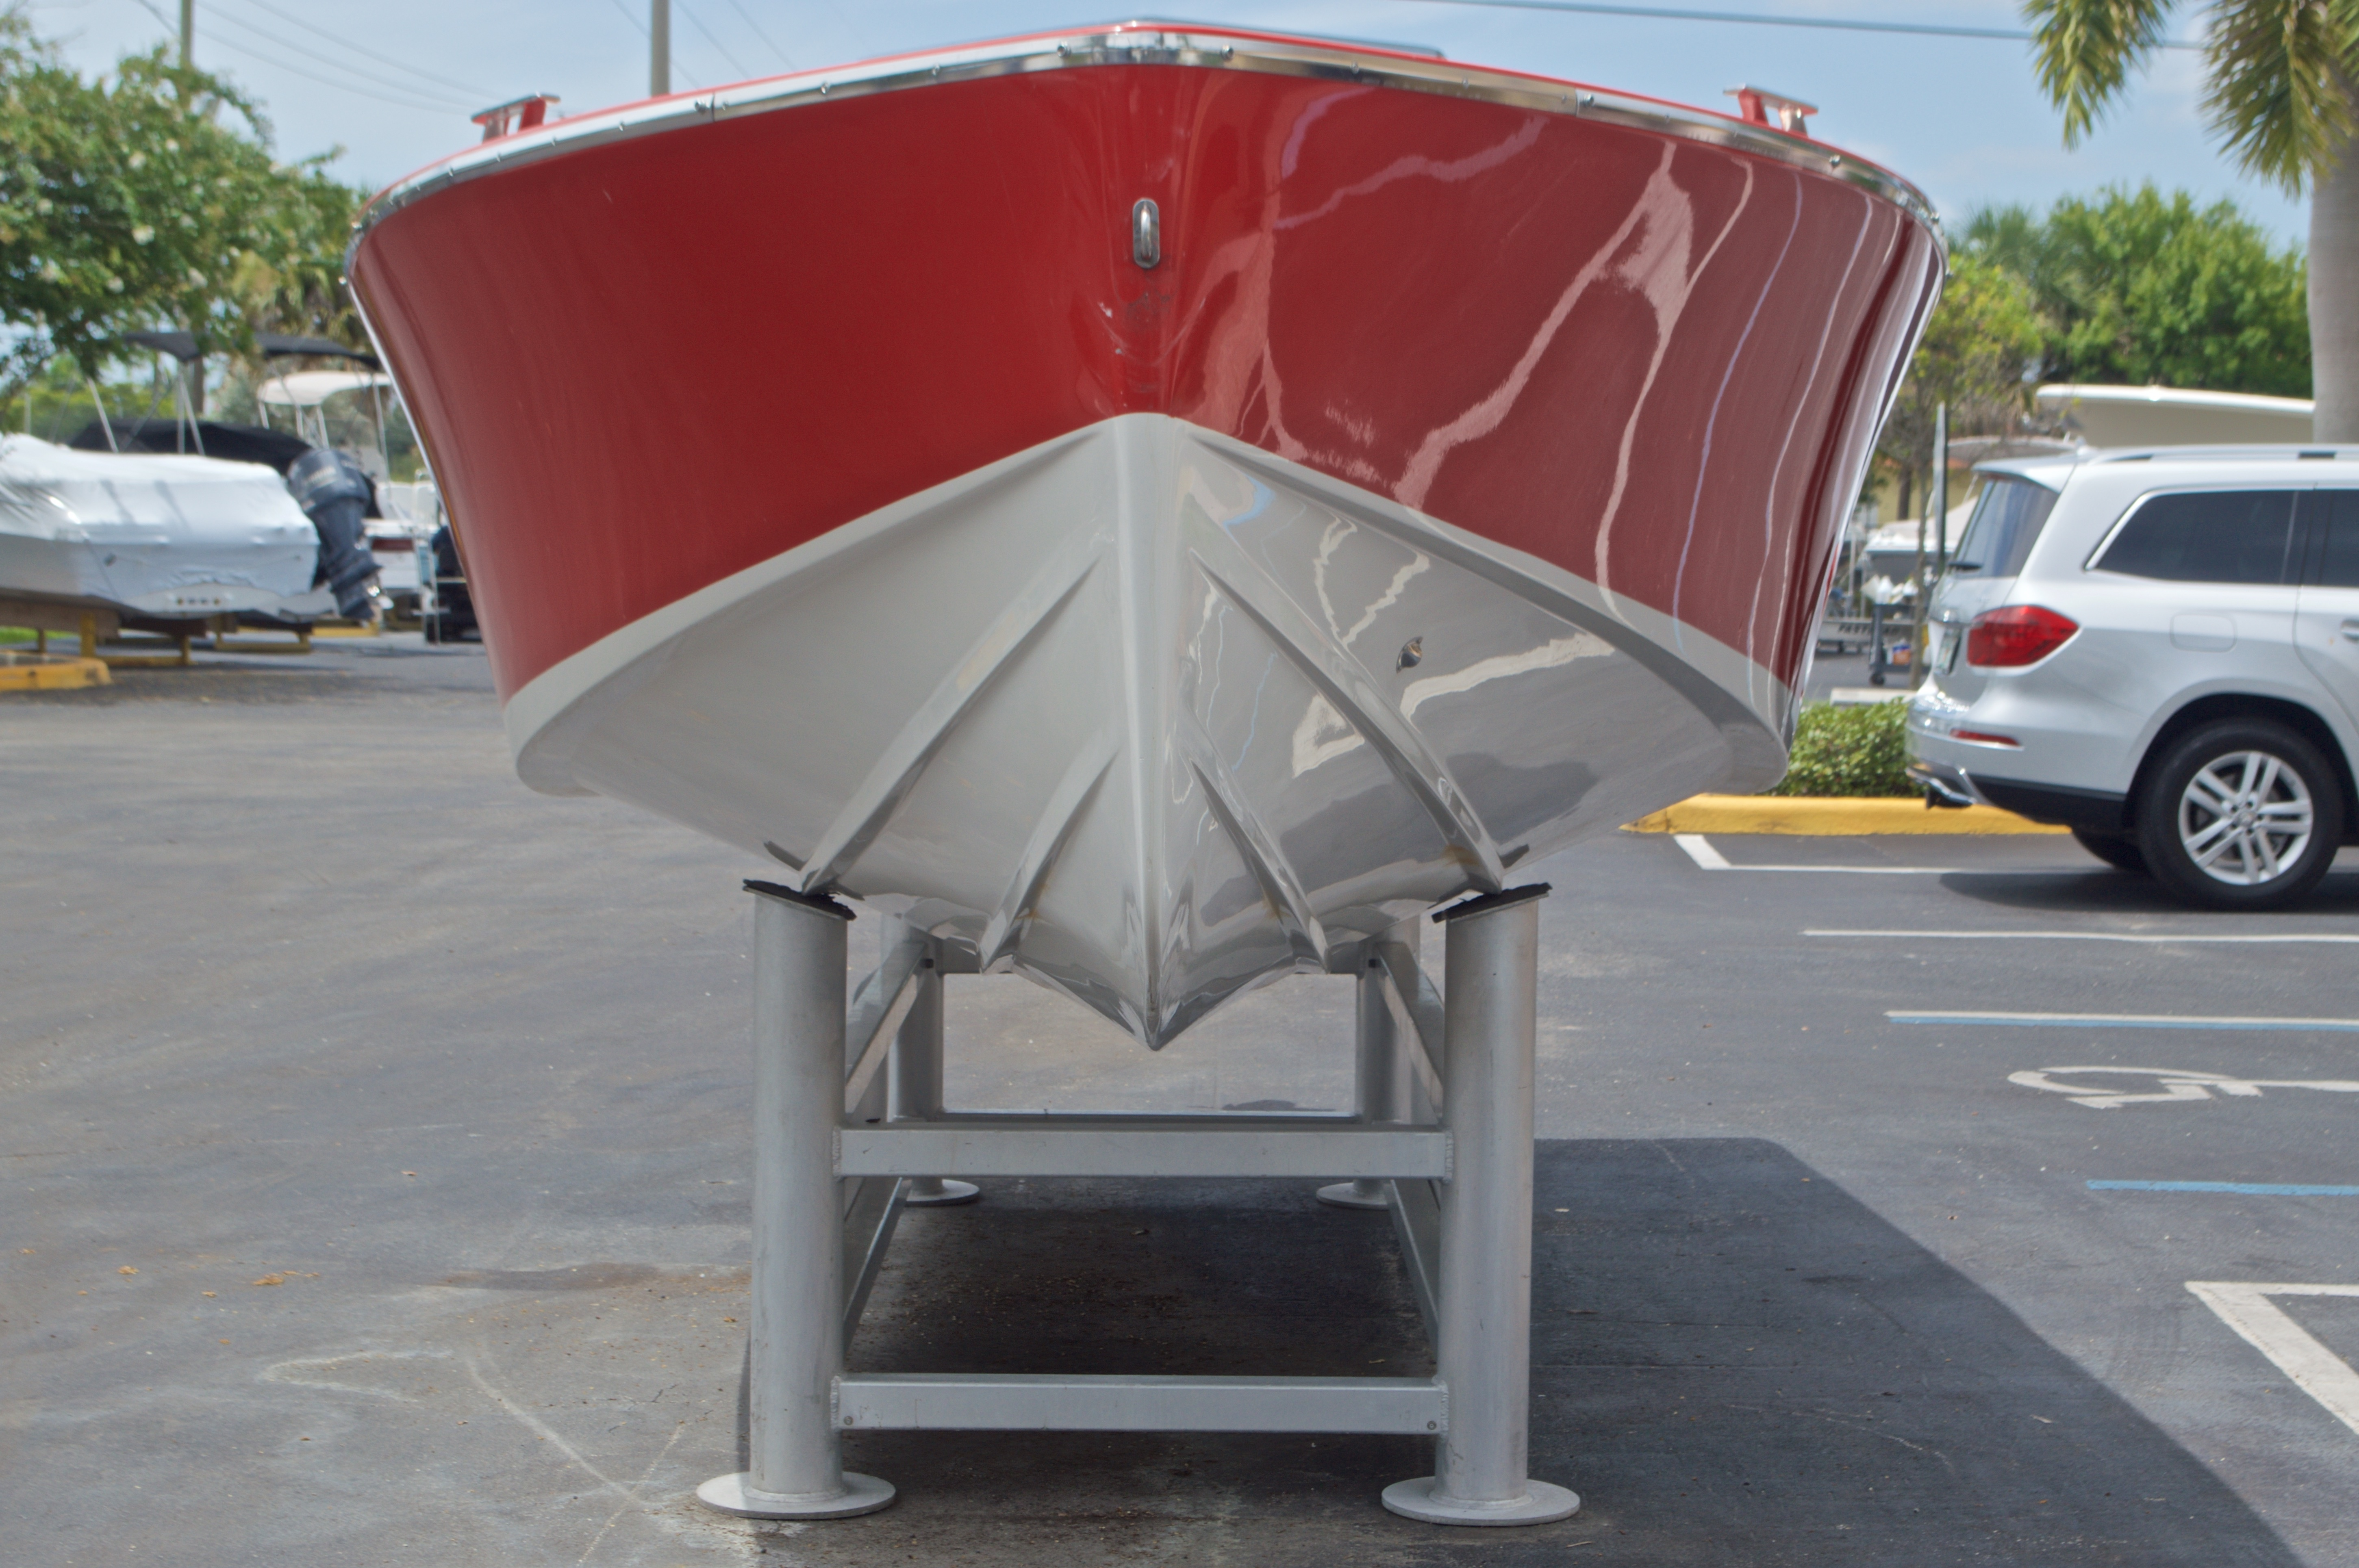 Thumbnail 2 for Used 2007 Frauscher 686 Lido boat for sale in West Palm Beach, FL